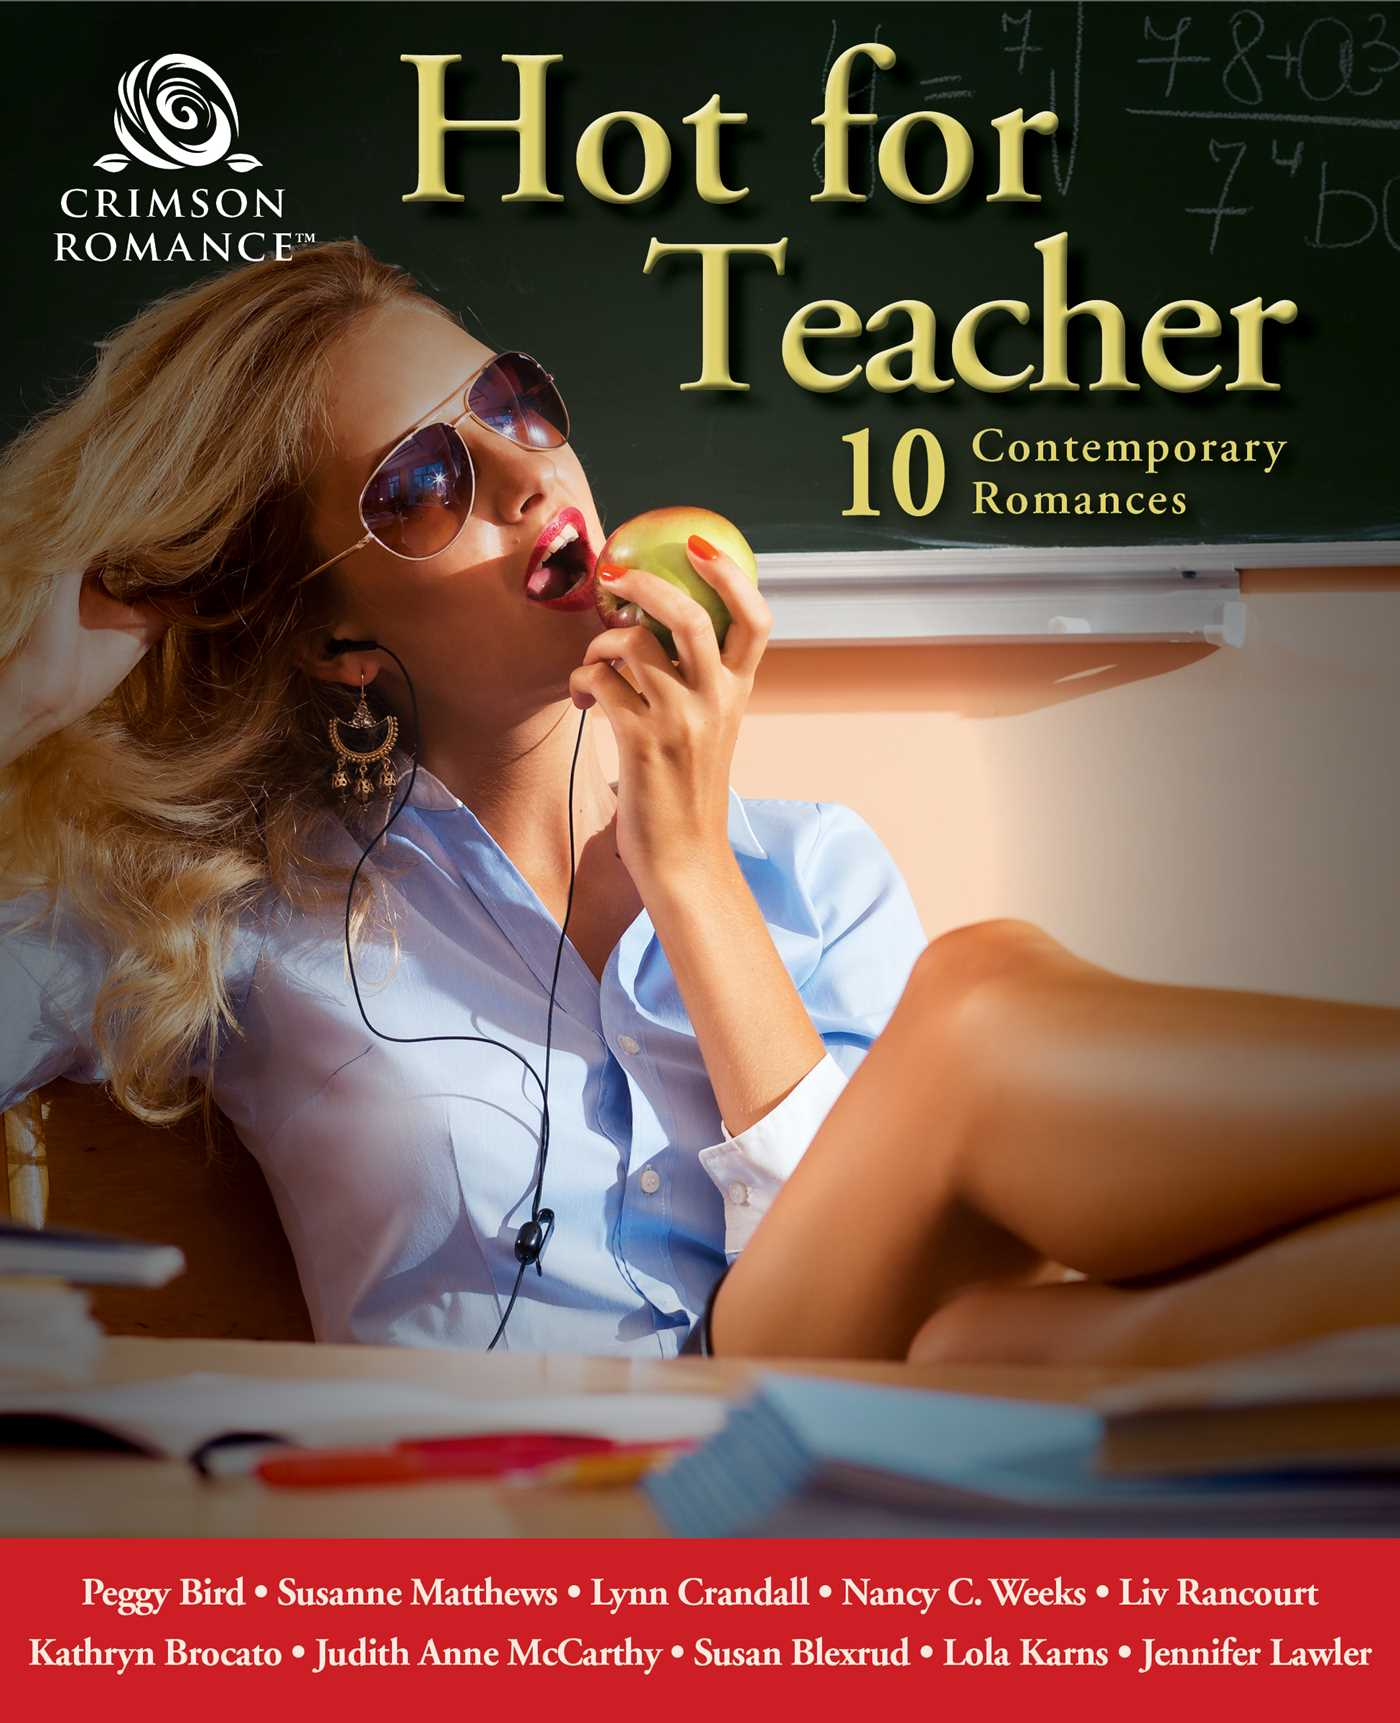 Hot for teacher 9781507203491 hr